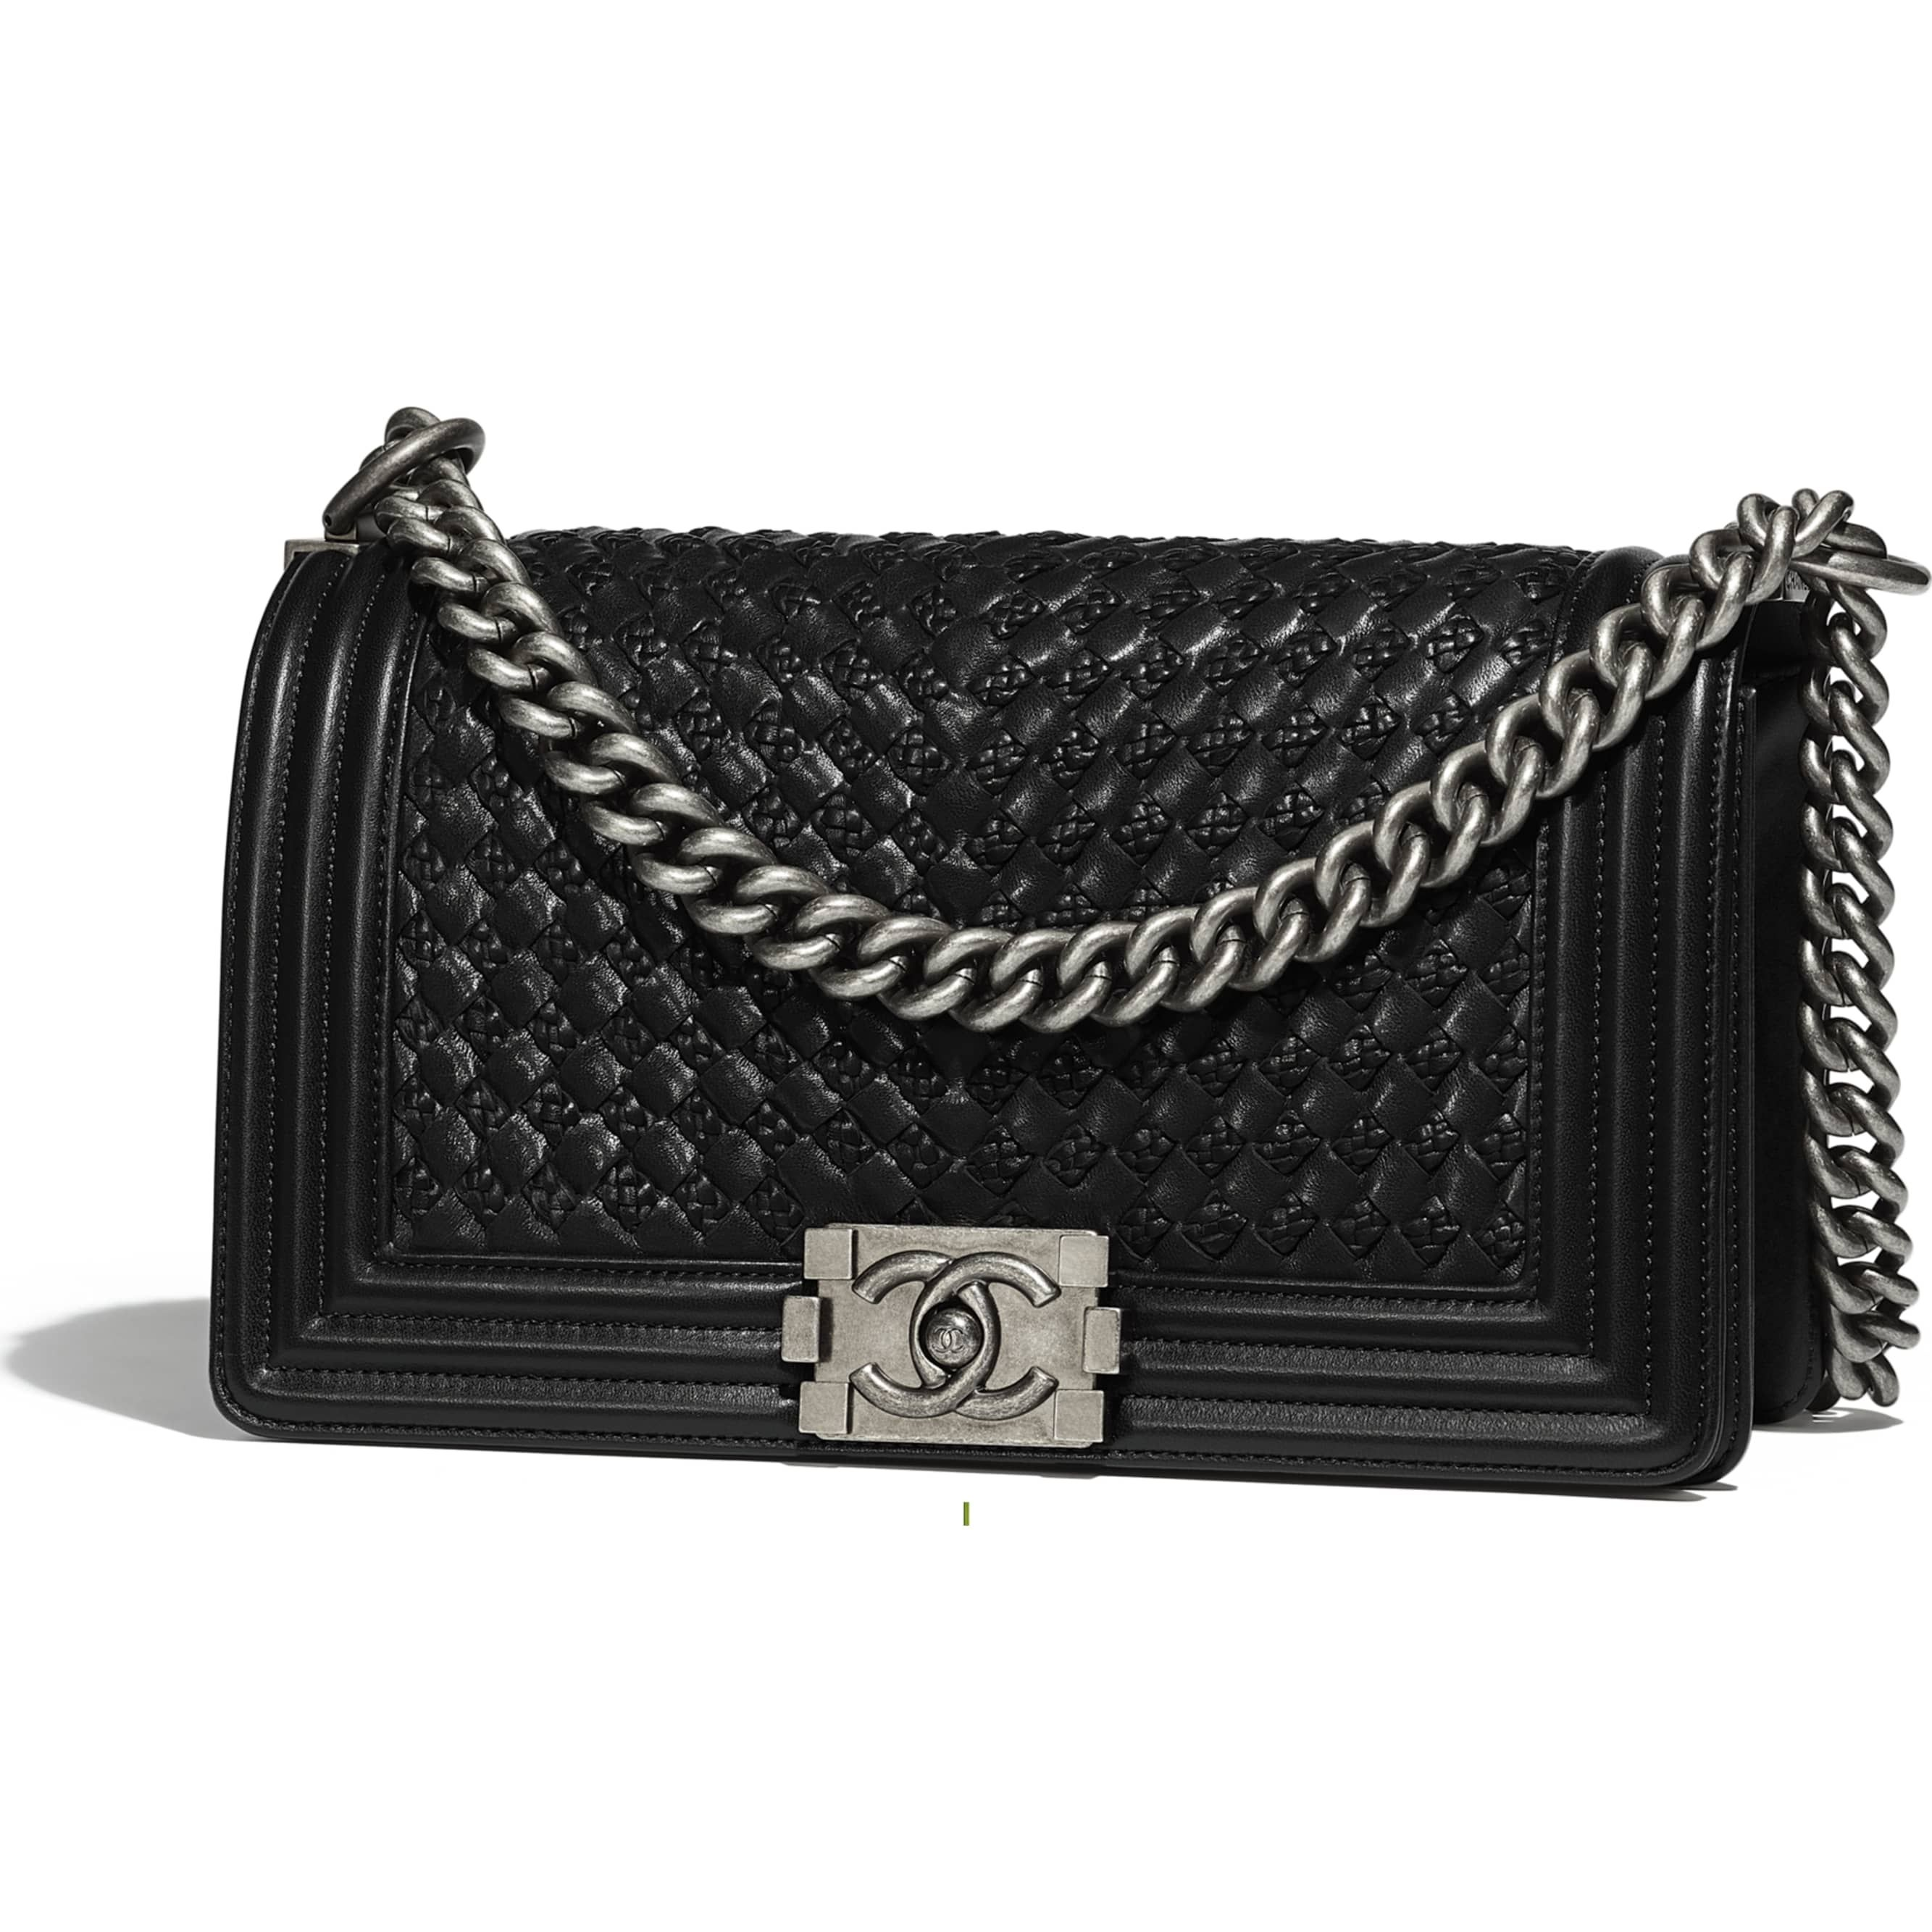 7704b0cca83e Braided Calfskin & Ruthenium-Tone Metal Black BOY CHANEL Handbag | CHANEL